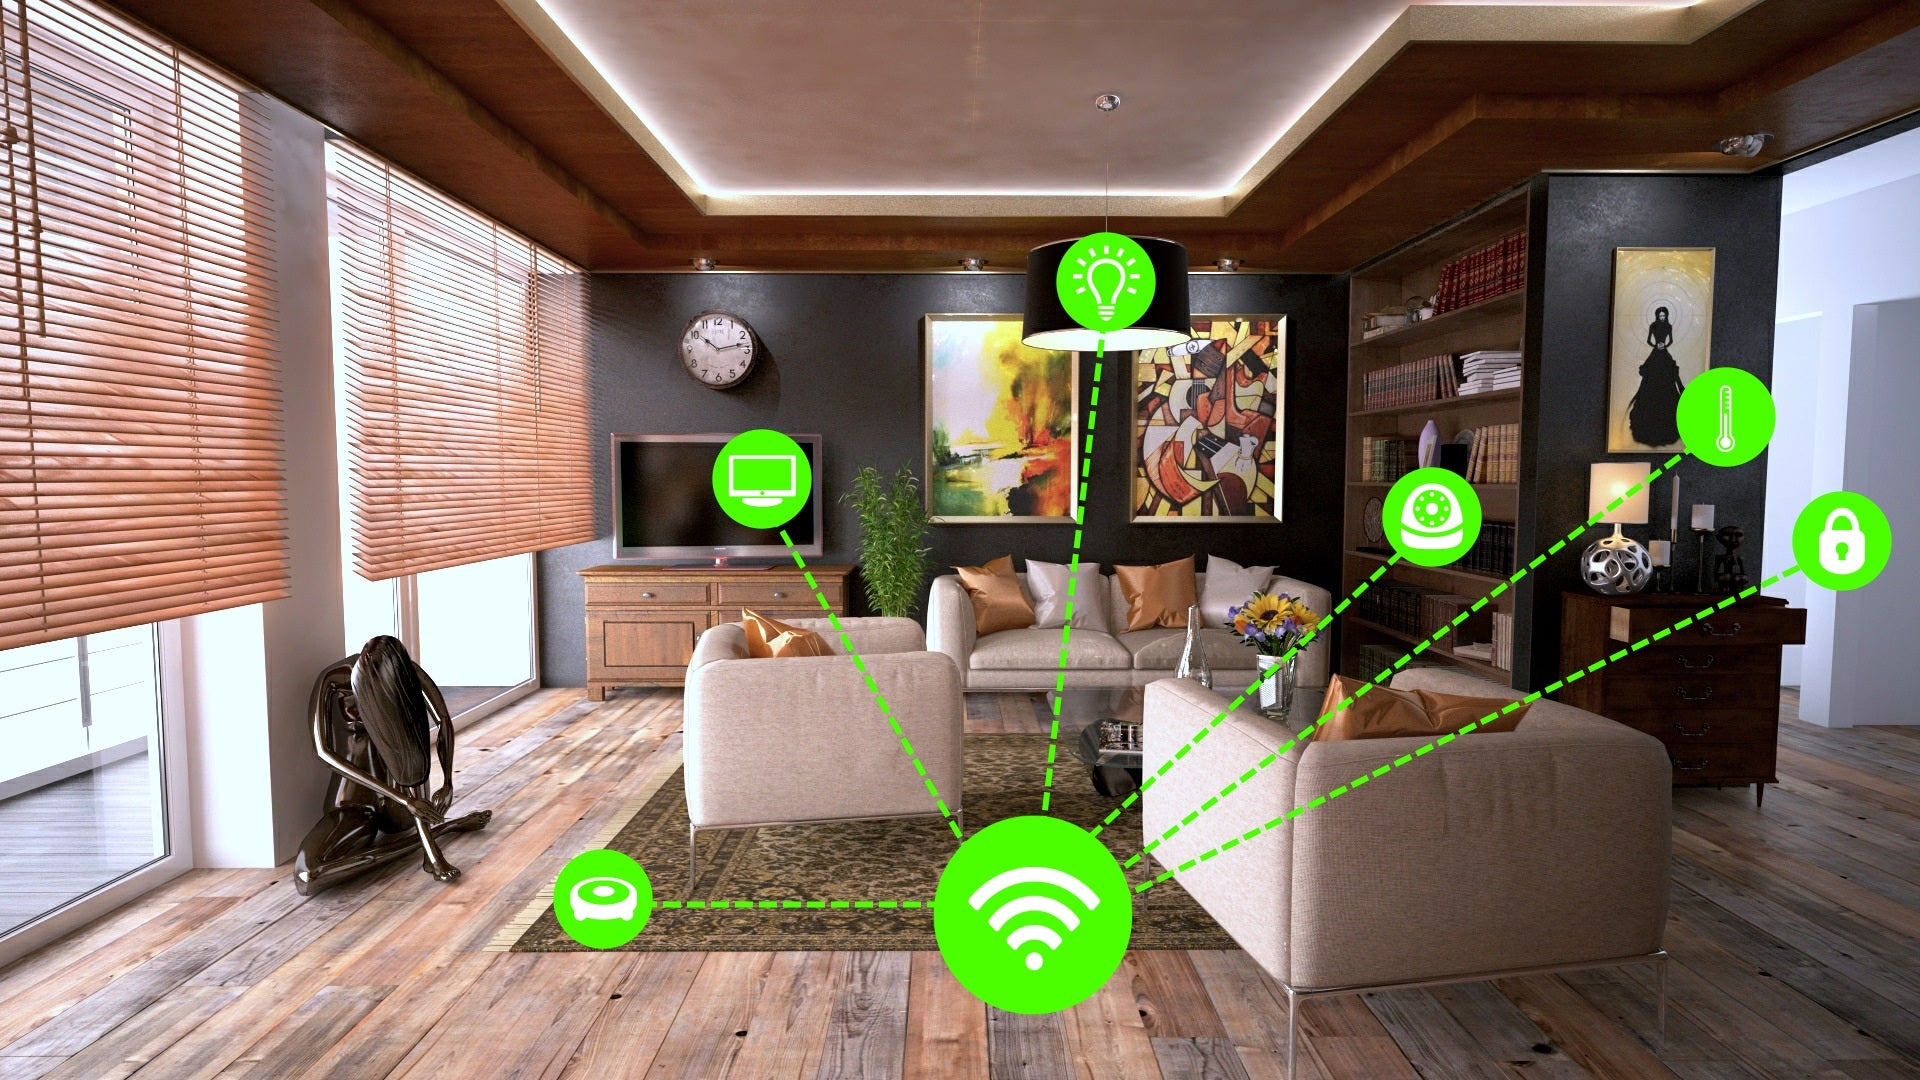 Connected Home Devices | Robautic